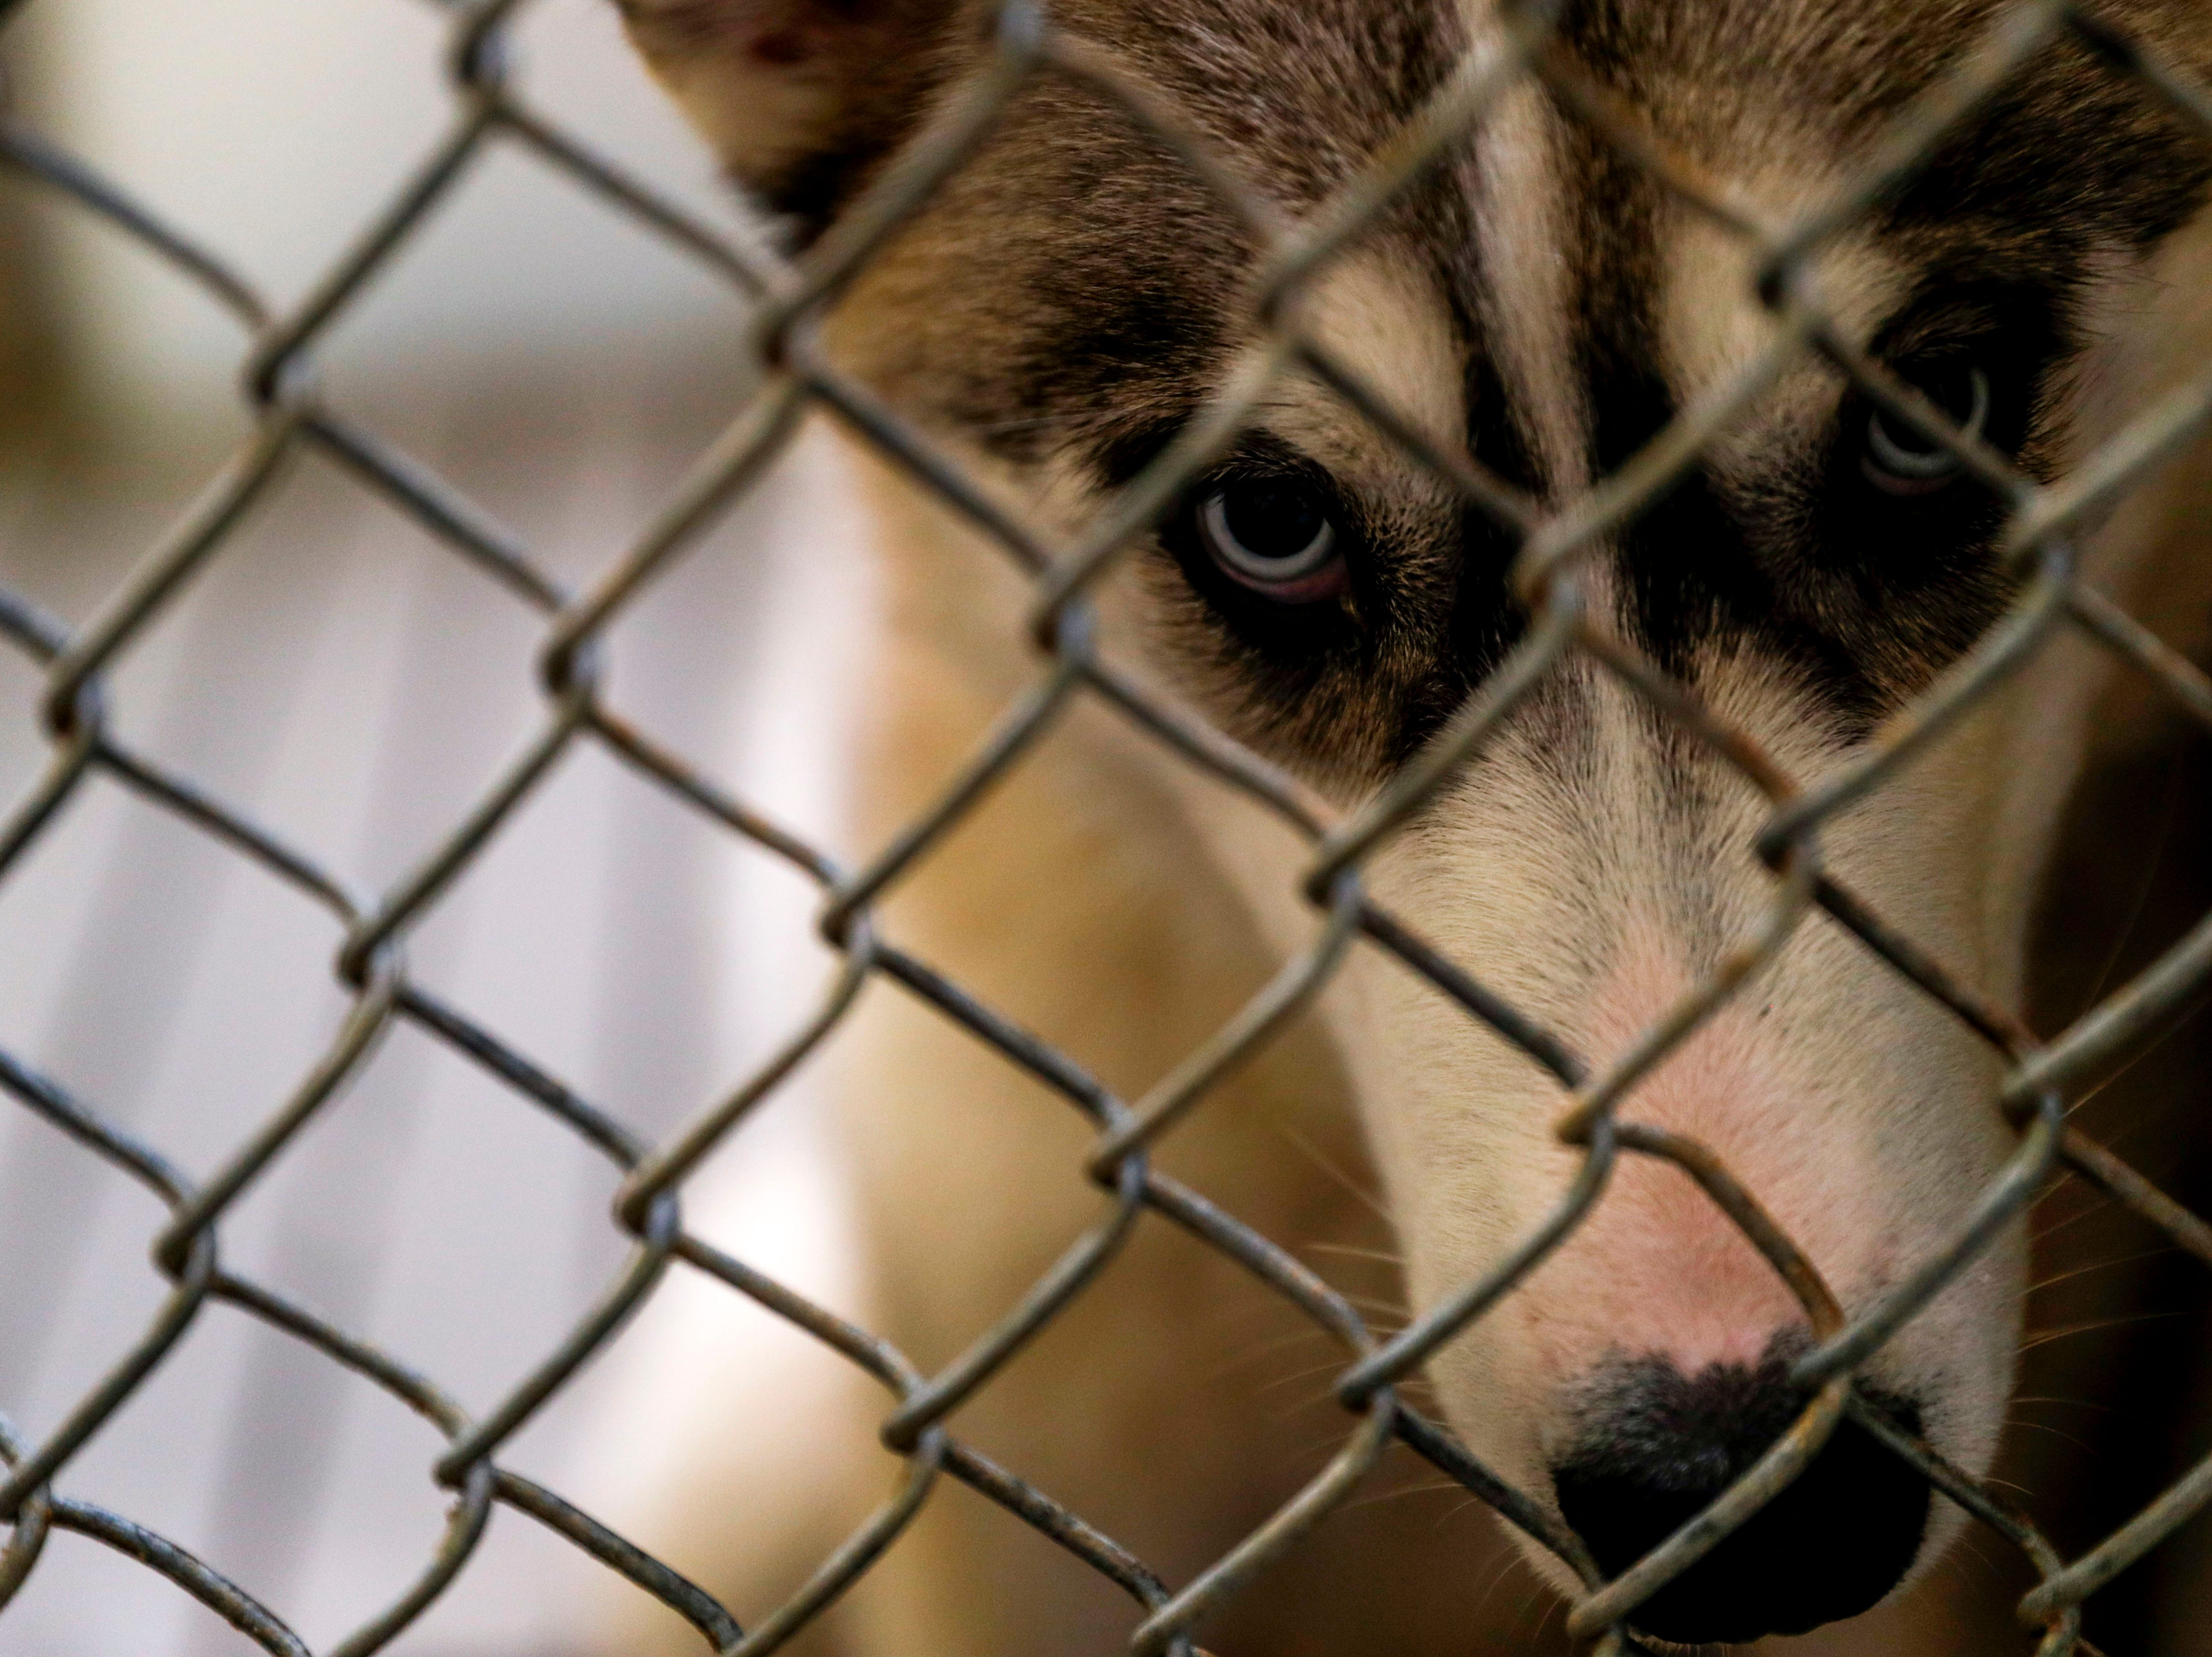 Logan, a Husky, peers out through the cage while waiting for a new owner to take him home at Montgomery County Animal Care and Control in Clarksville, Tenn., on Wednesday, March 13, 2019.